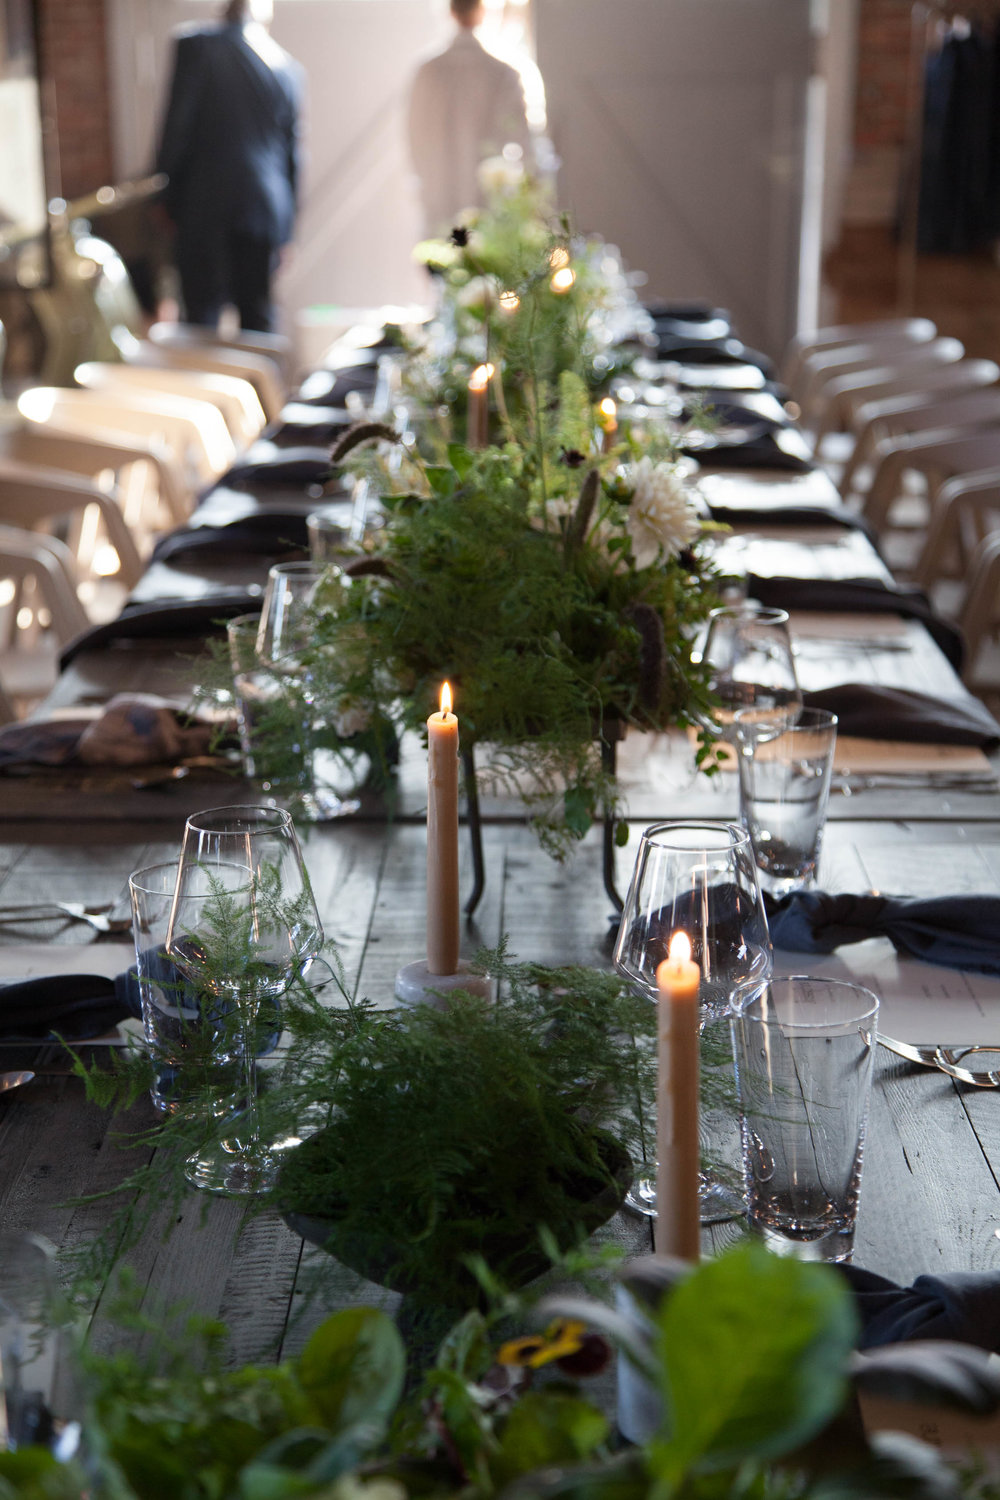 12th-Table-WEDDING-RENTALS-NASHVILLE-Design-Tips-Events-ENTERTAINING-Corporate-Events-PeterNappi-PrivateEvent-Photograph #-32.jpg